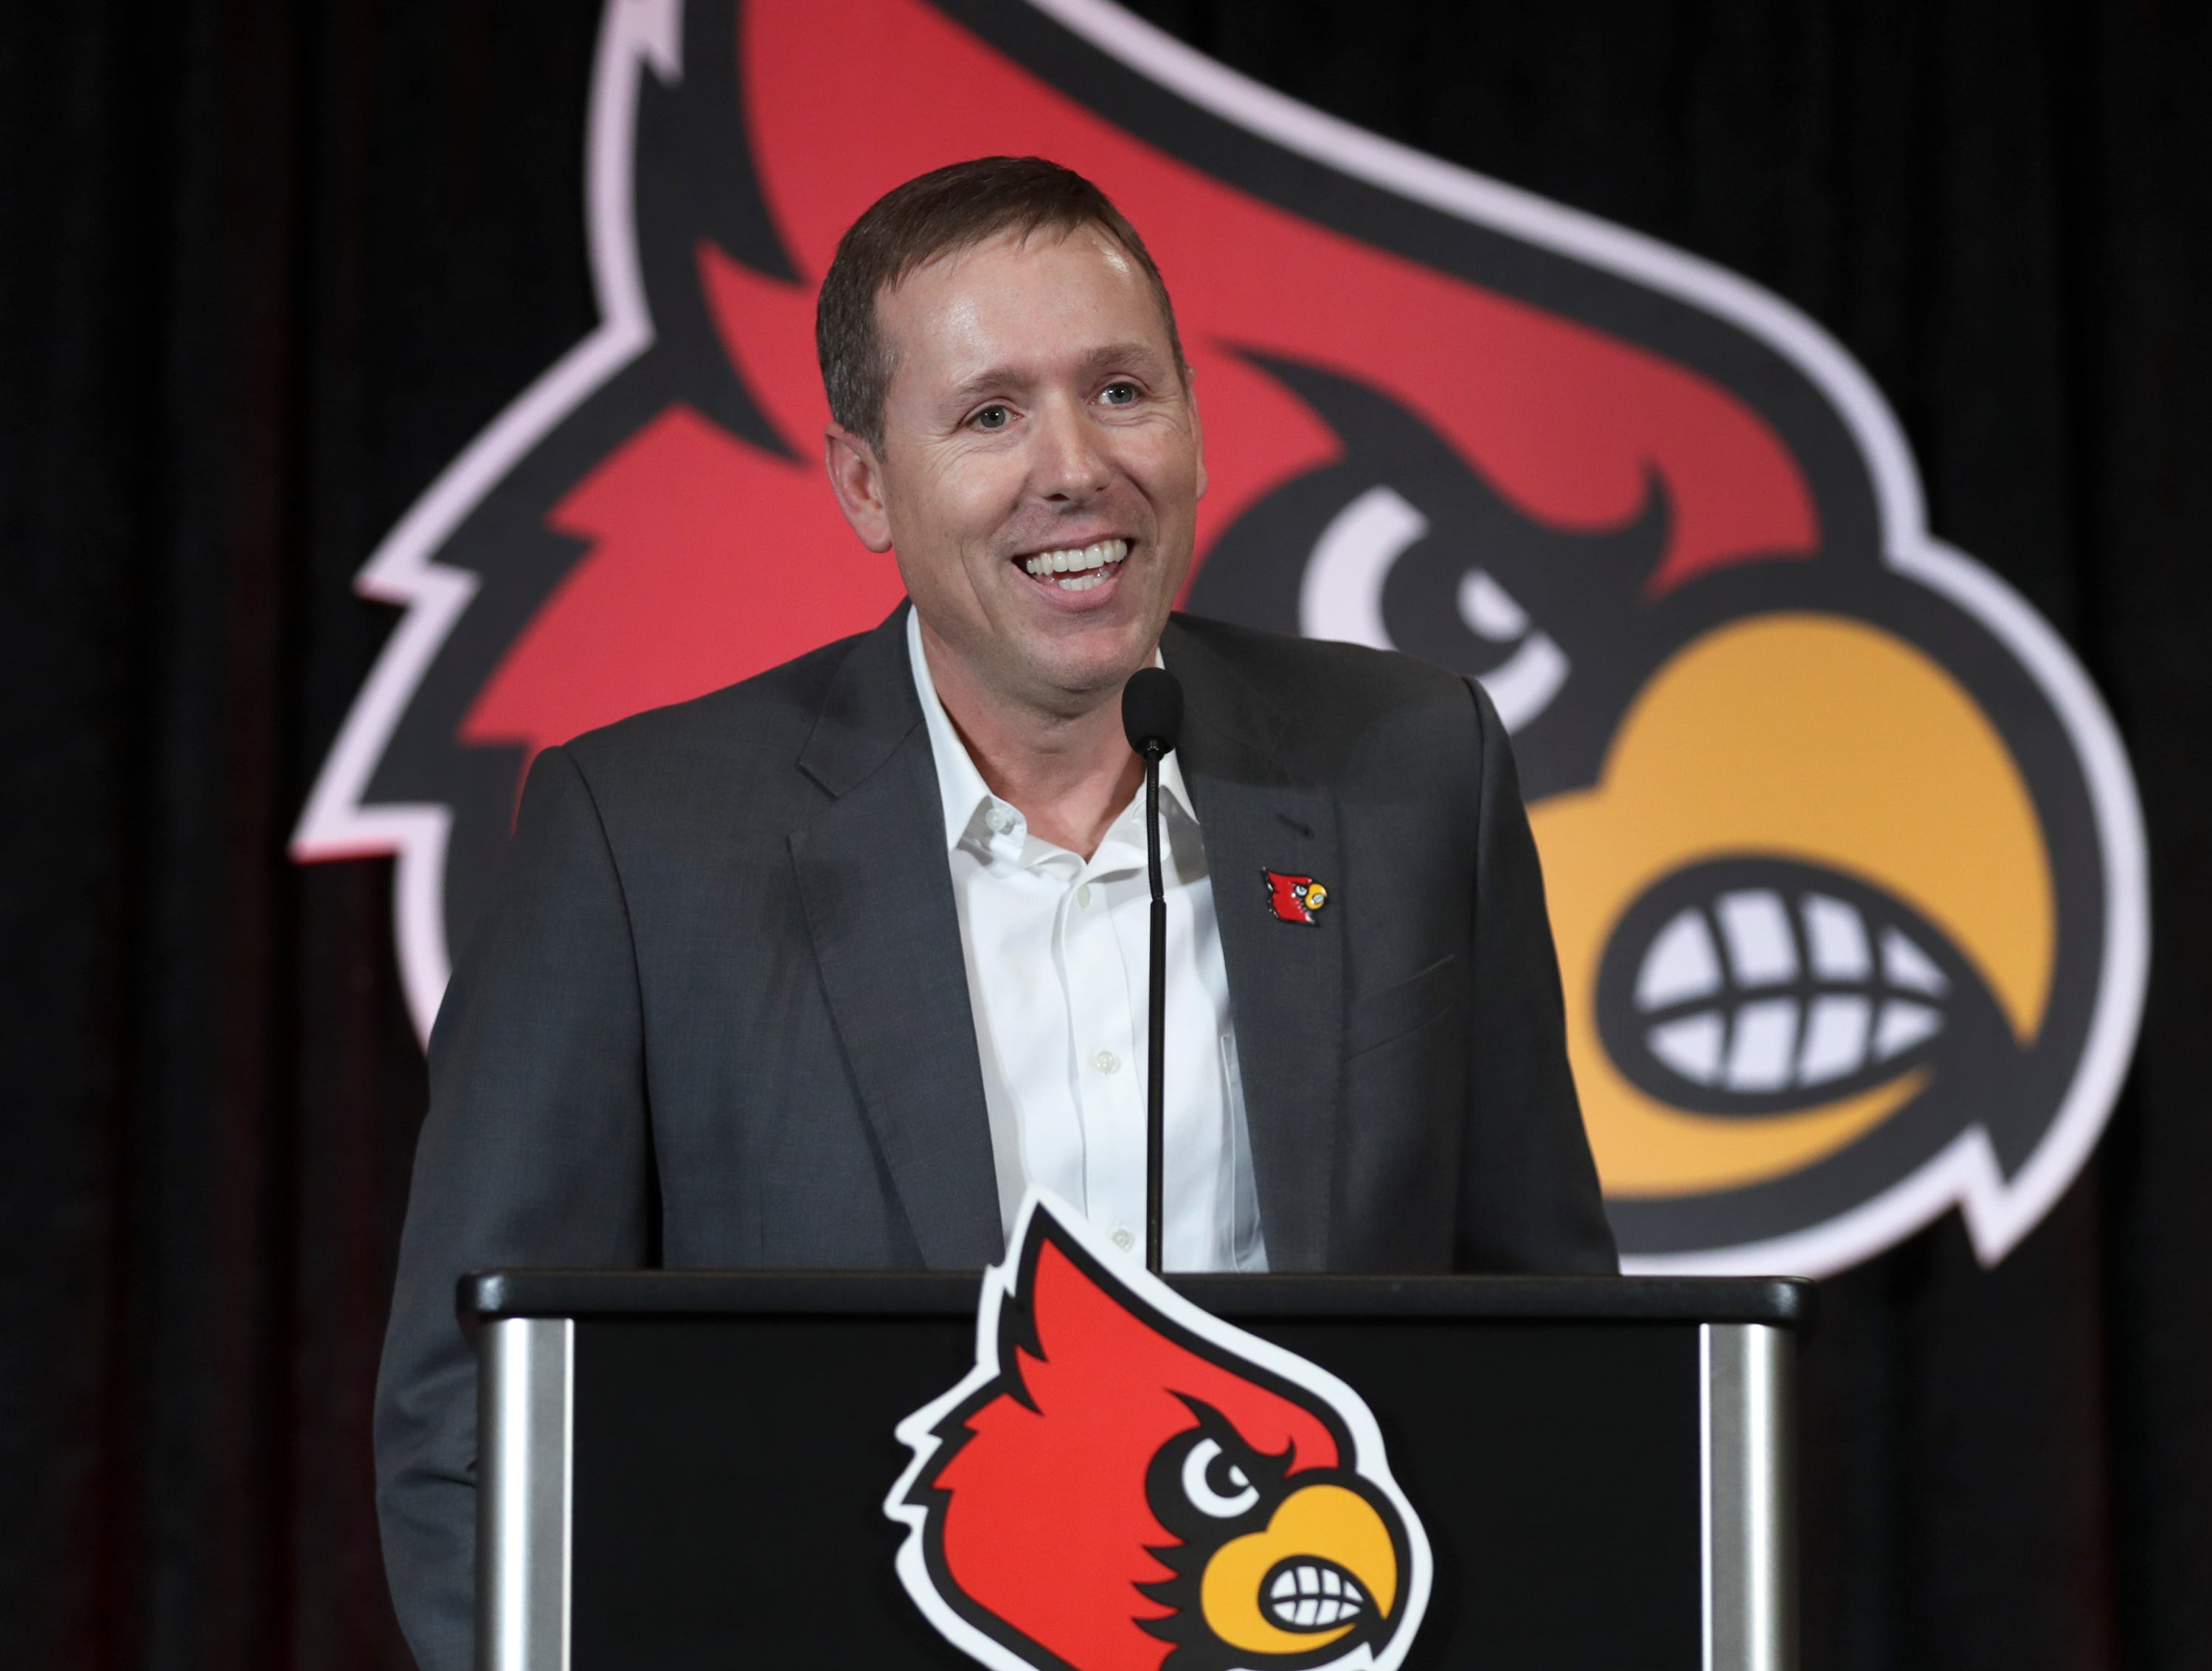 Coach Scott Satterfield speaks after being named coach at Louisville on Tuesday evening.December 4, 2018